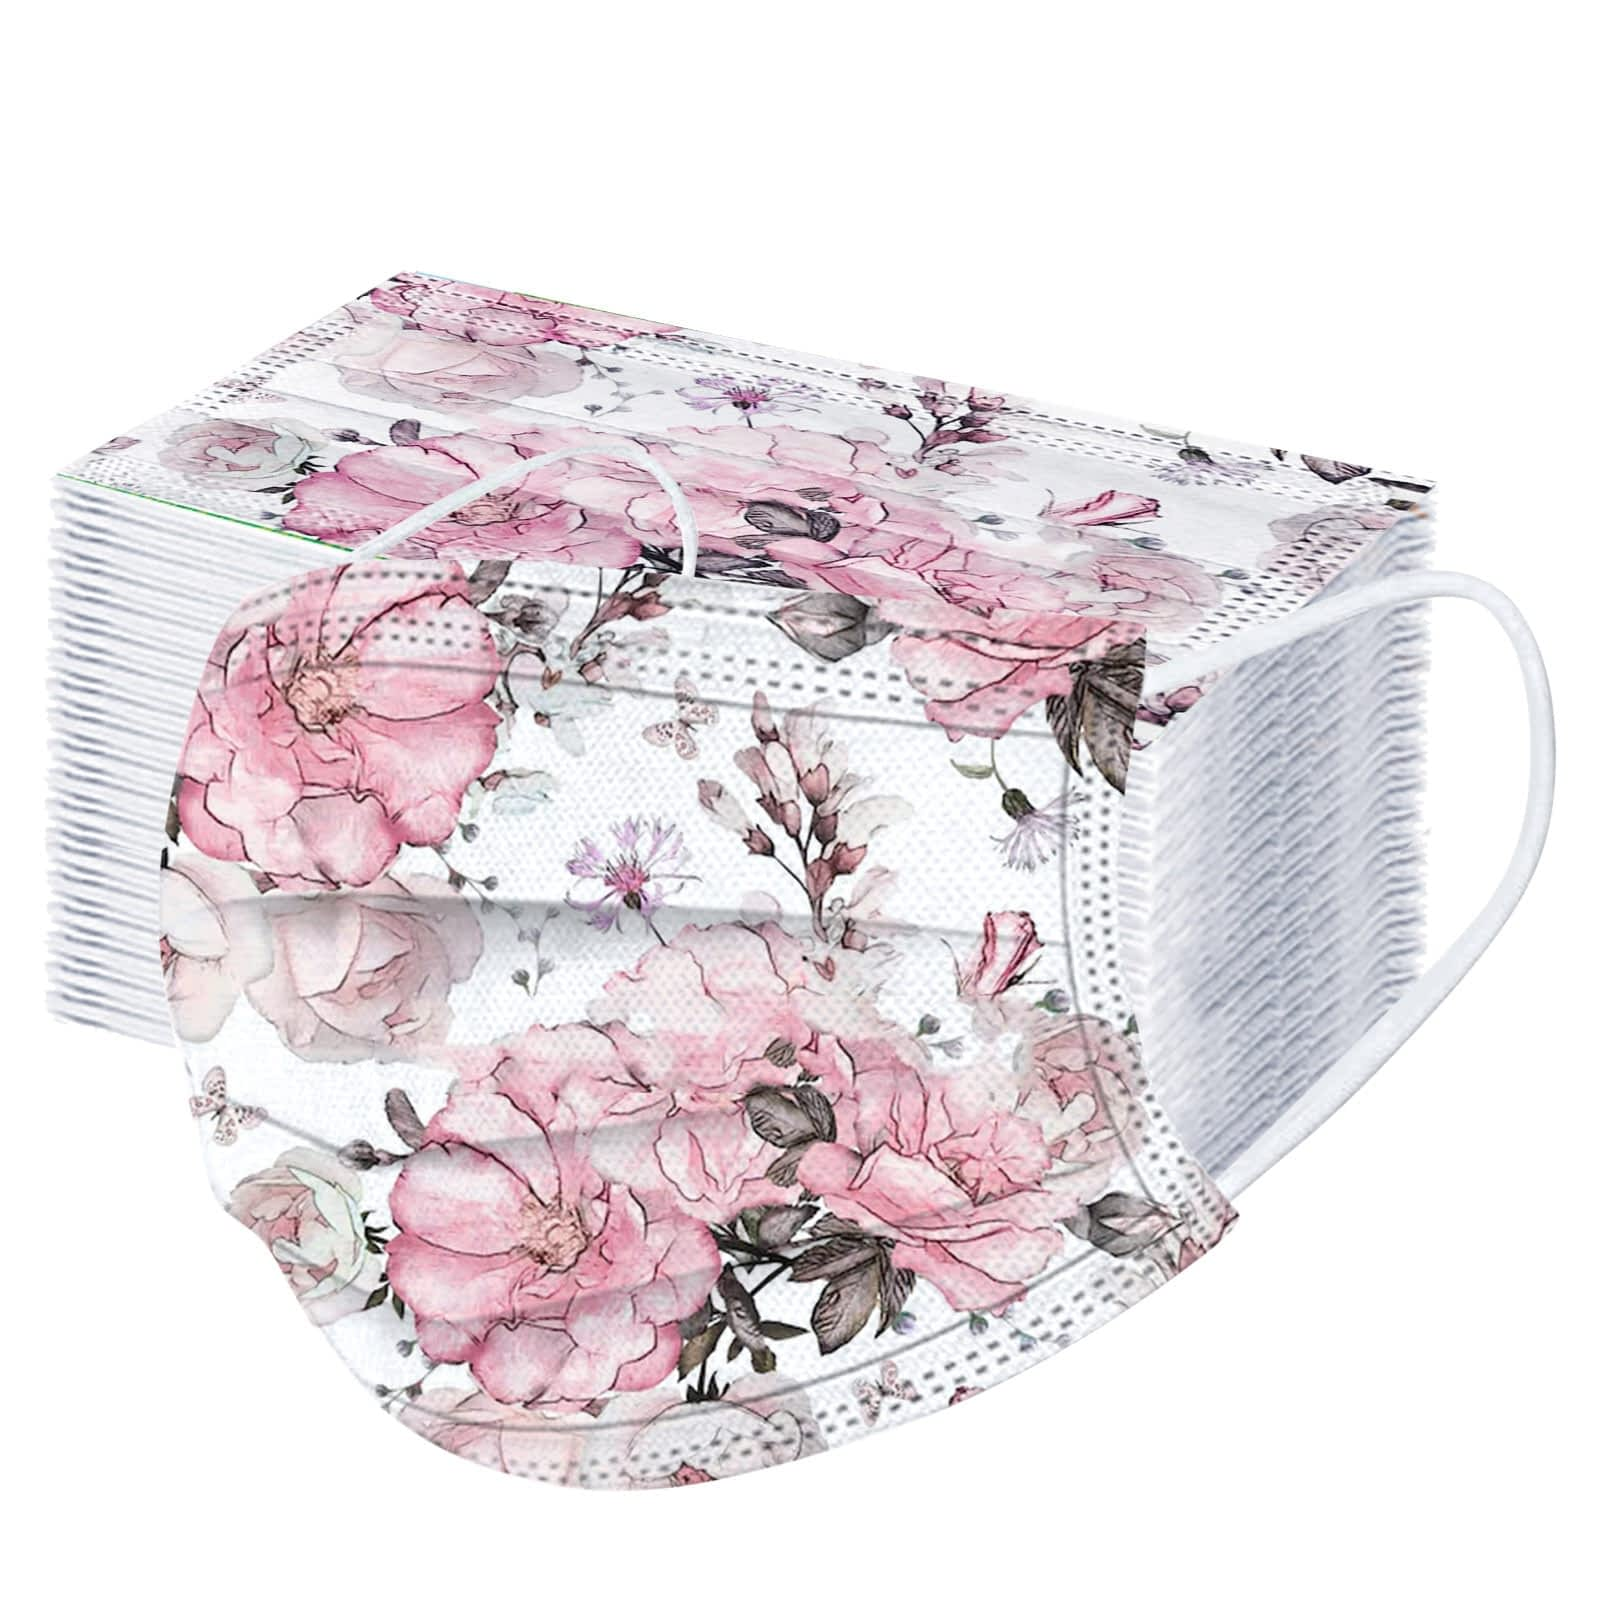 10-50-100PCS-Floral-Mask-Adult-Disposable-Mask-Spring-Pink-Flower-Print-Three-Layer-Protective-Face-7.jpg